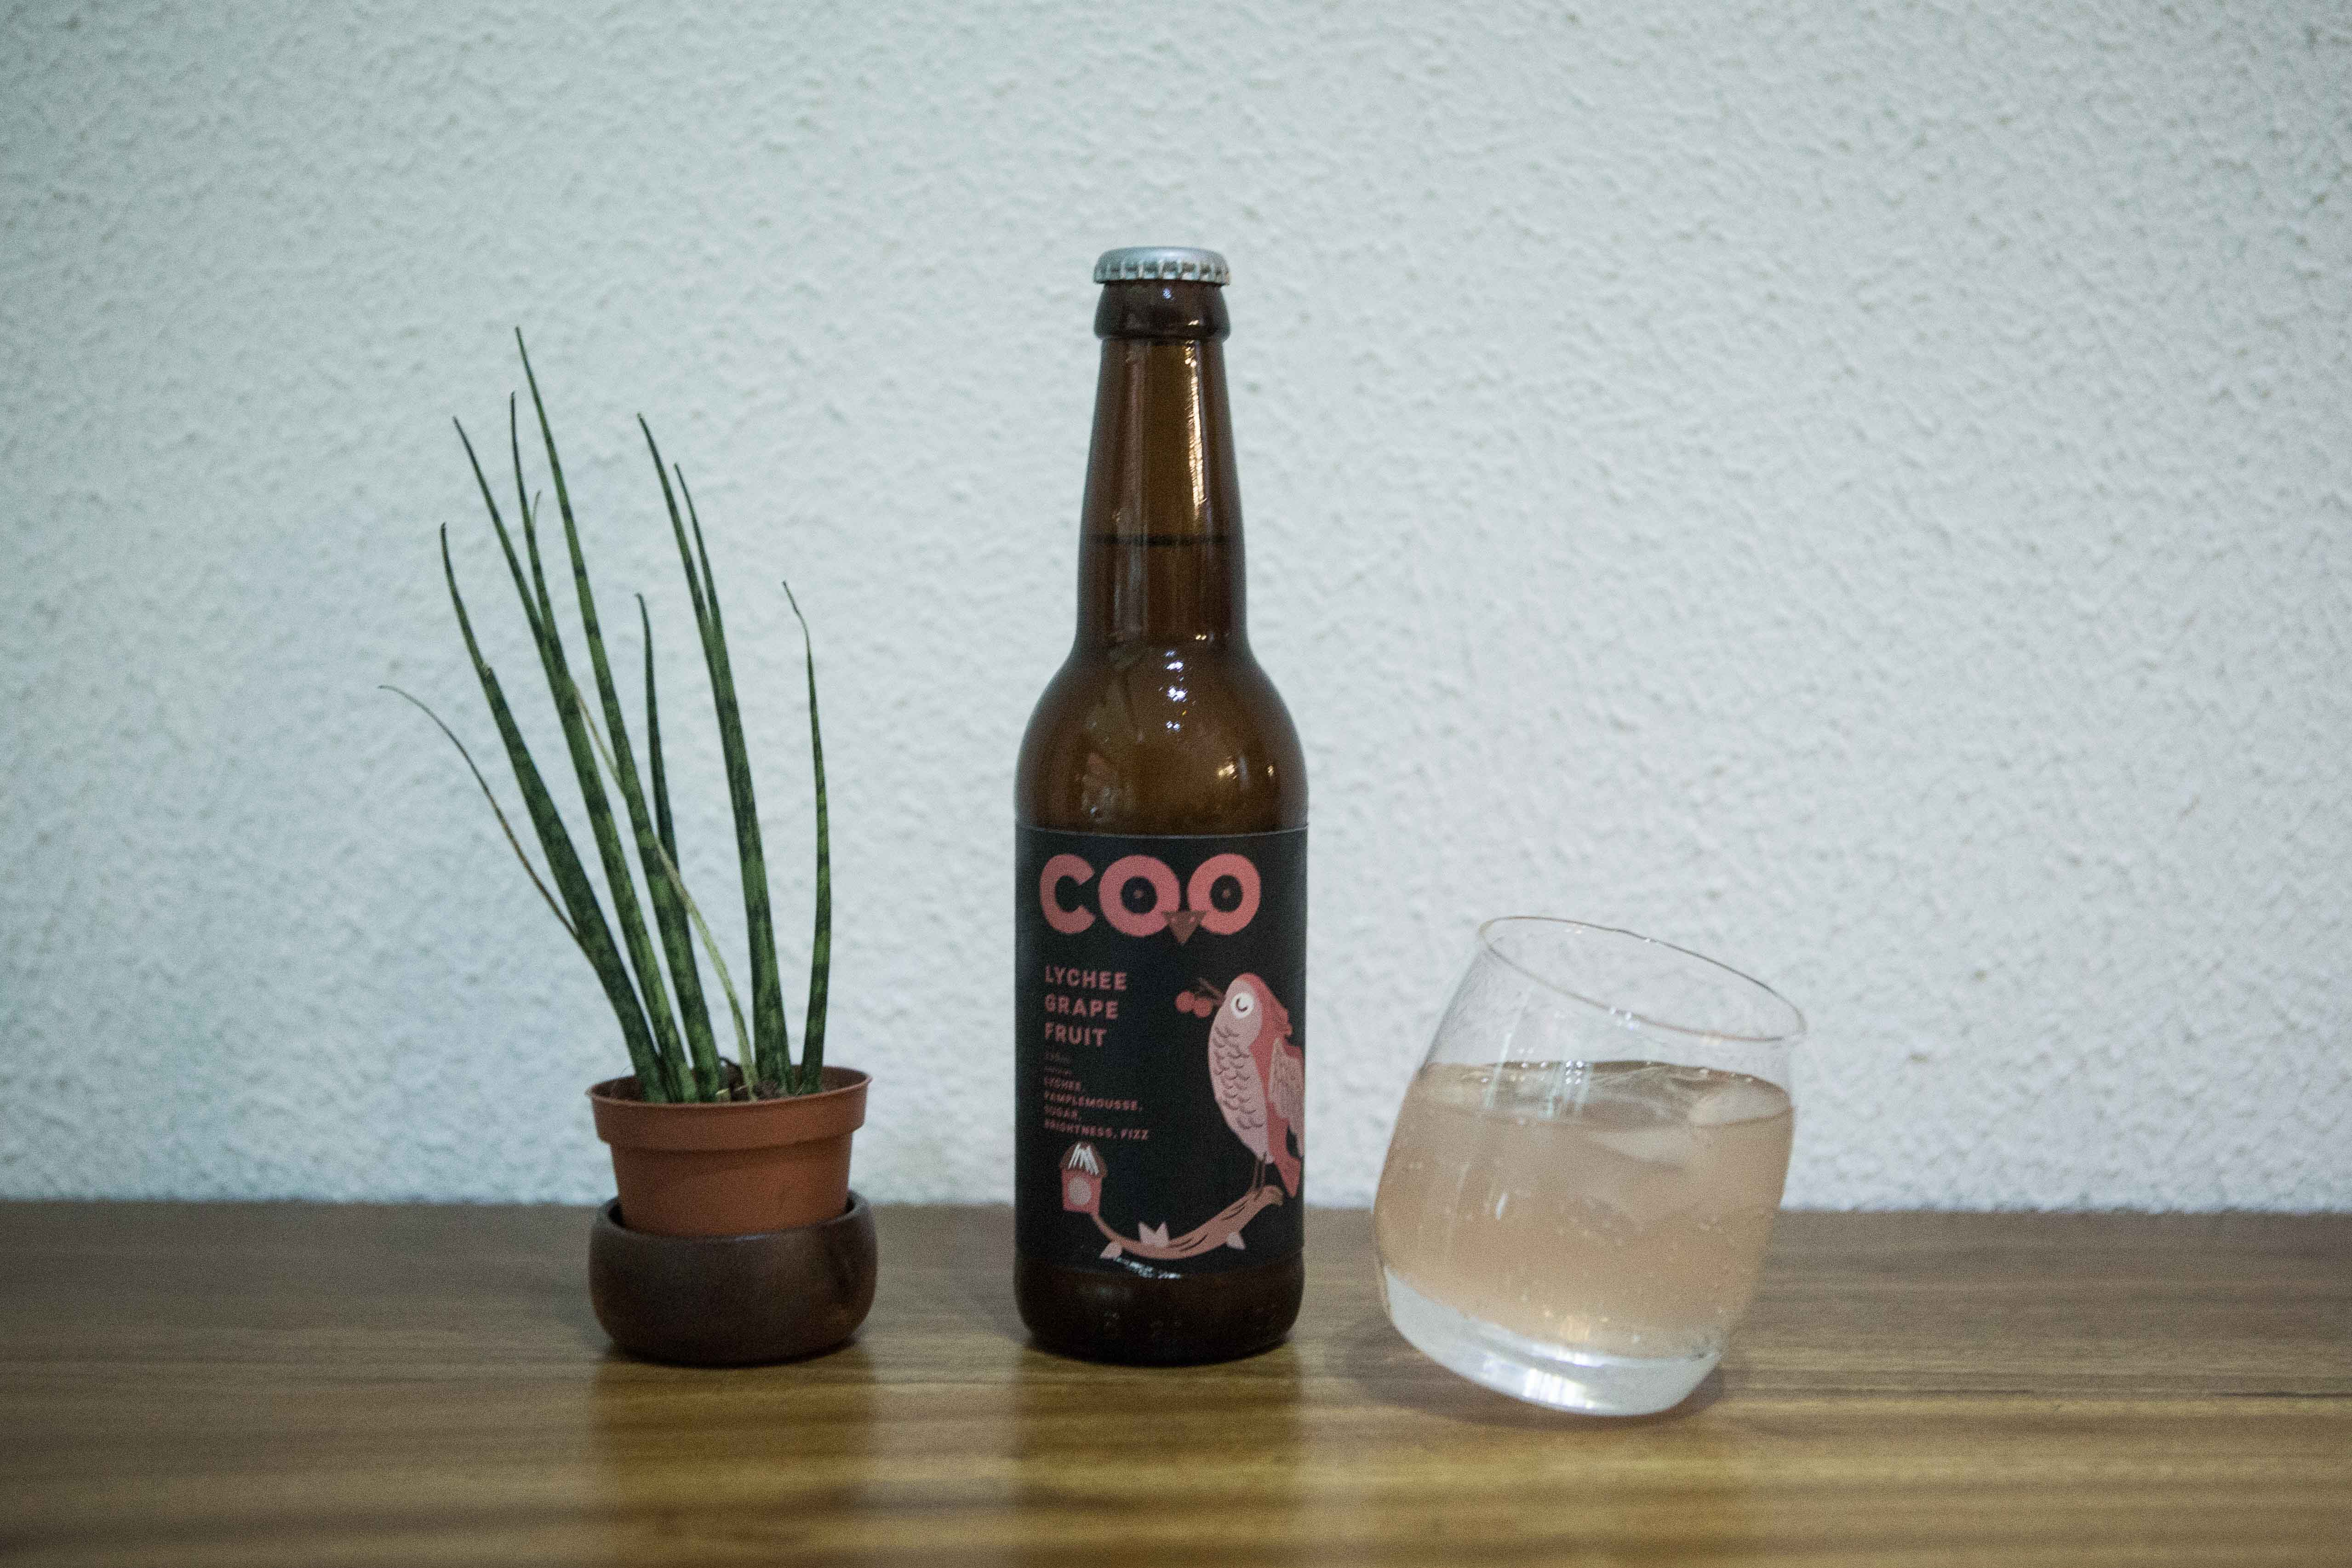 If you're not really feeling up to drinking coffee, you can also opt to grab a glass of COO Soda, which comes in three flavors.